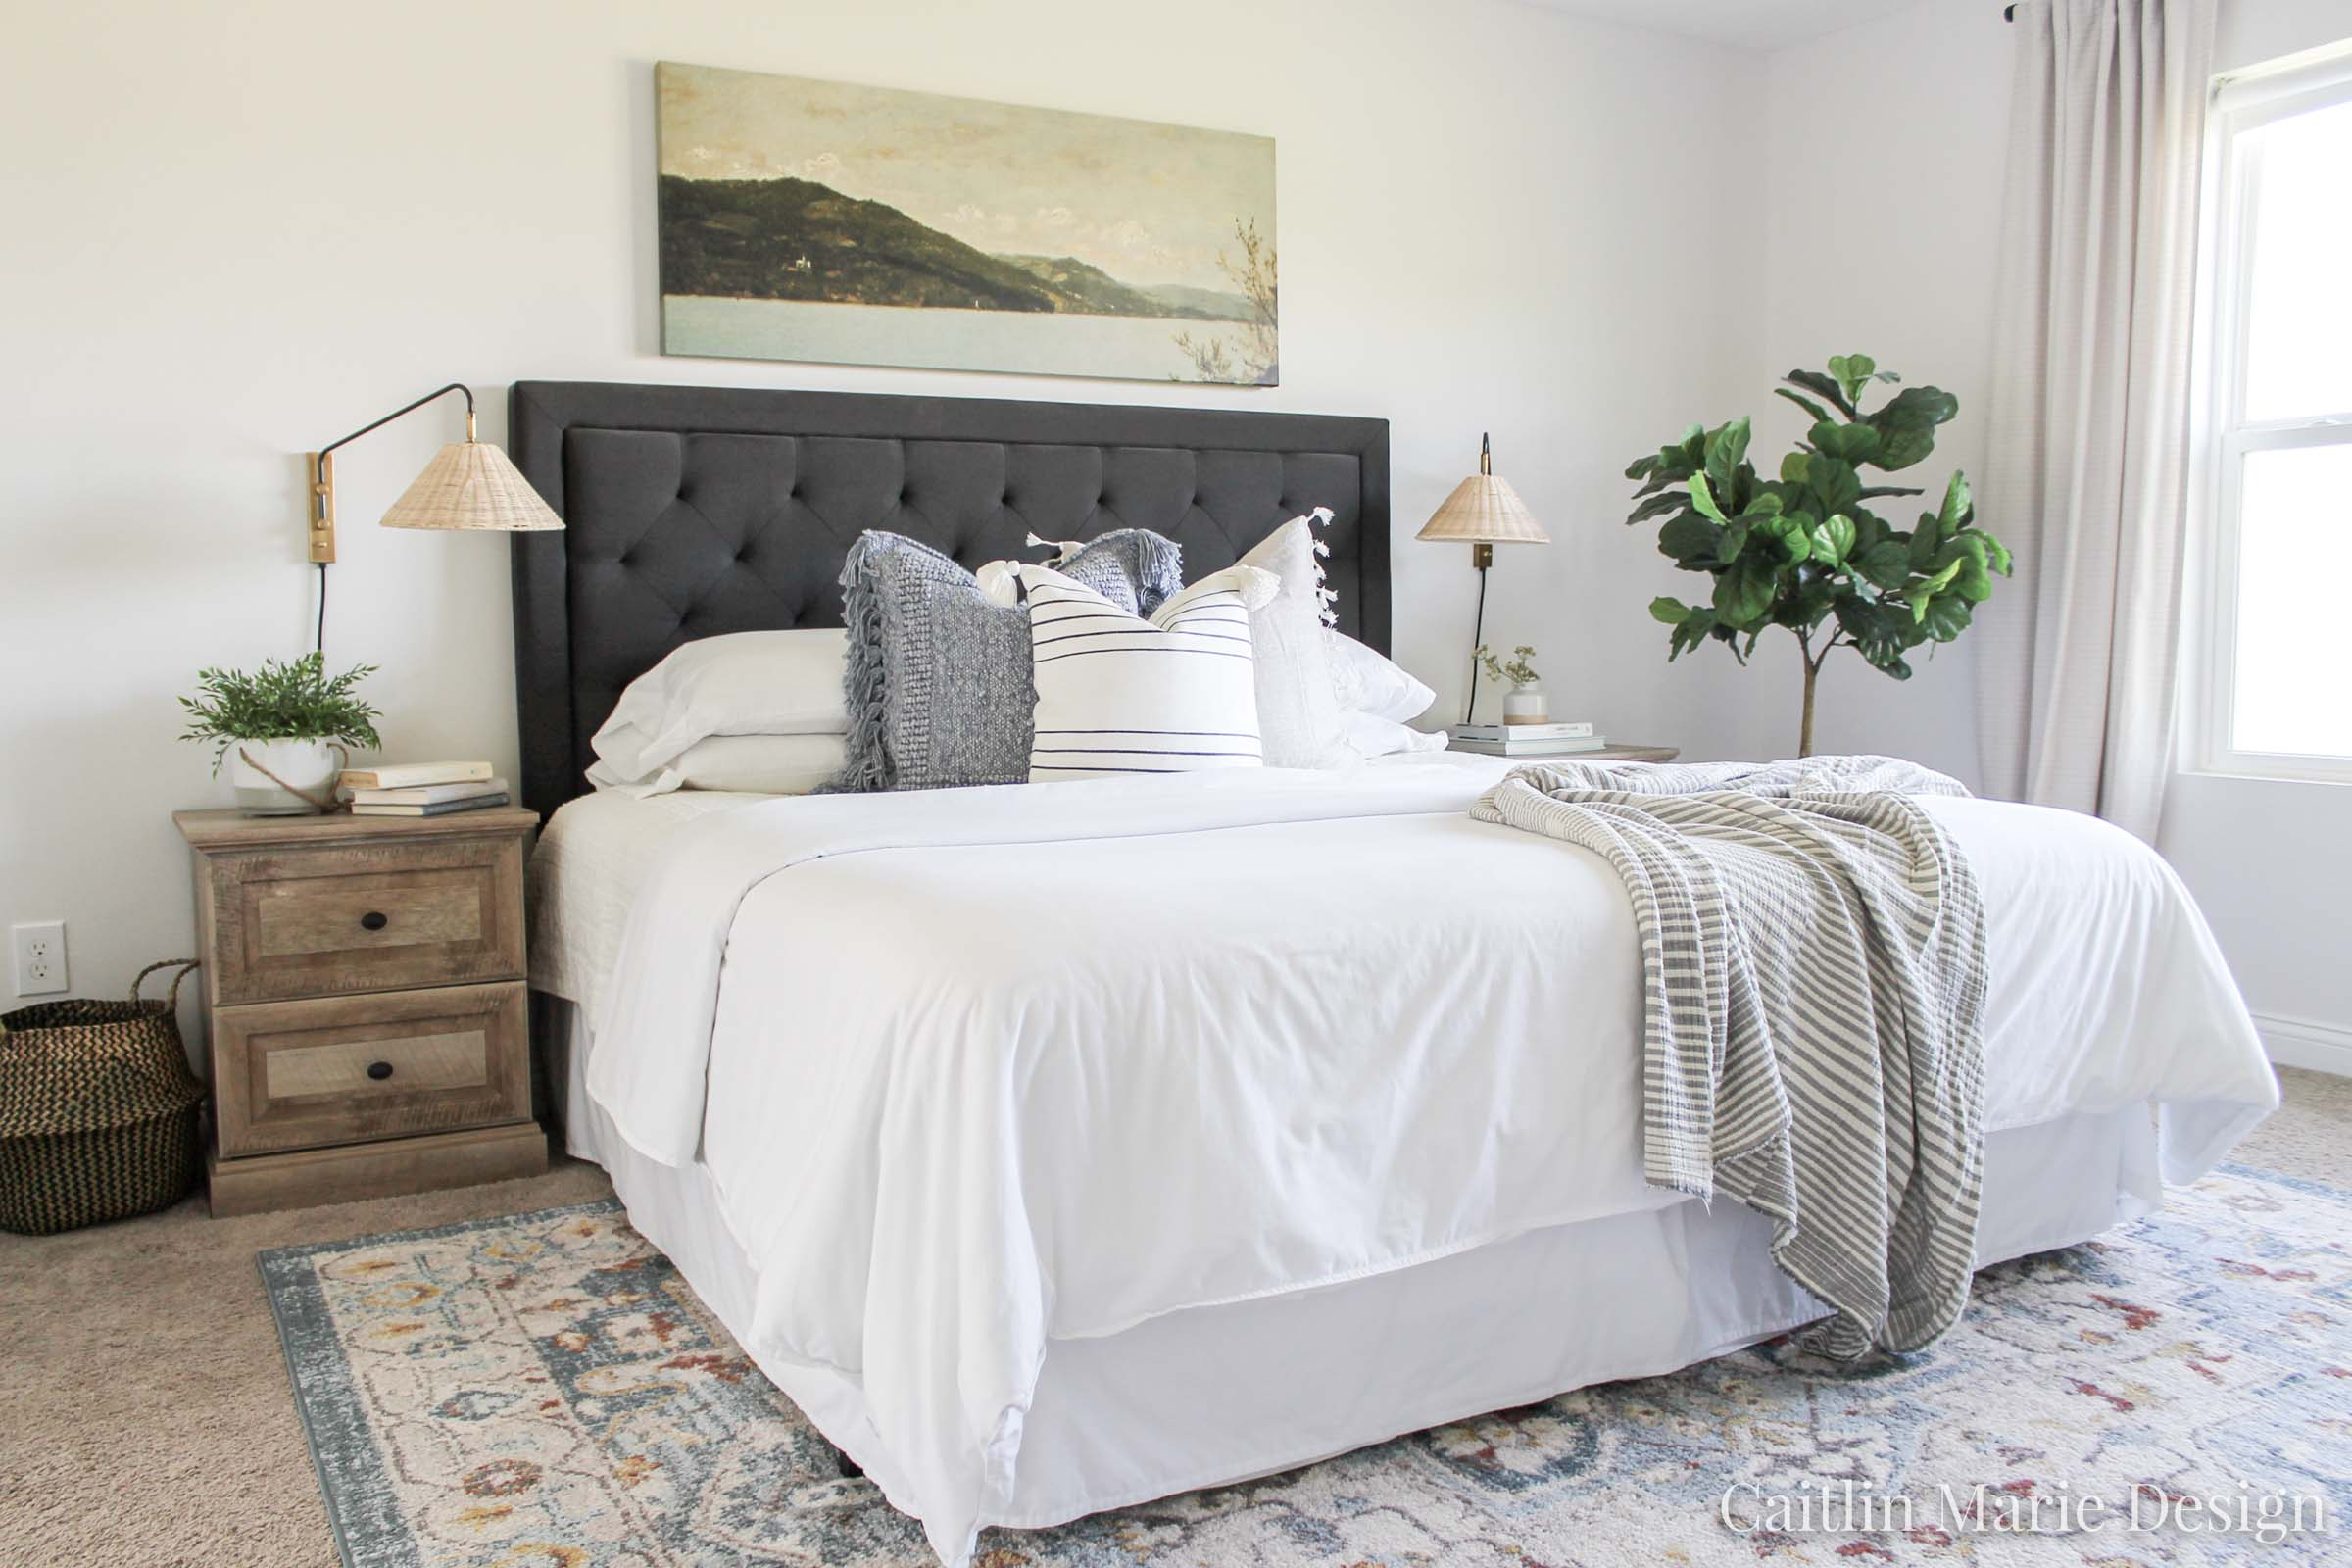 Coastal Pillow Refresh with Serena & Lily | coastal bedroom, rattan plug in wall sconces, dark headboard, neutral bedroom decor, wide art above the bed, vintage landscape painting